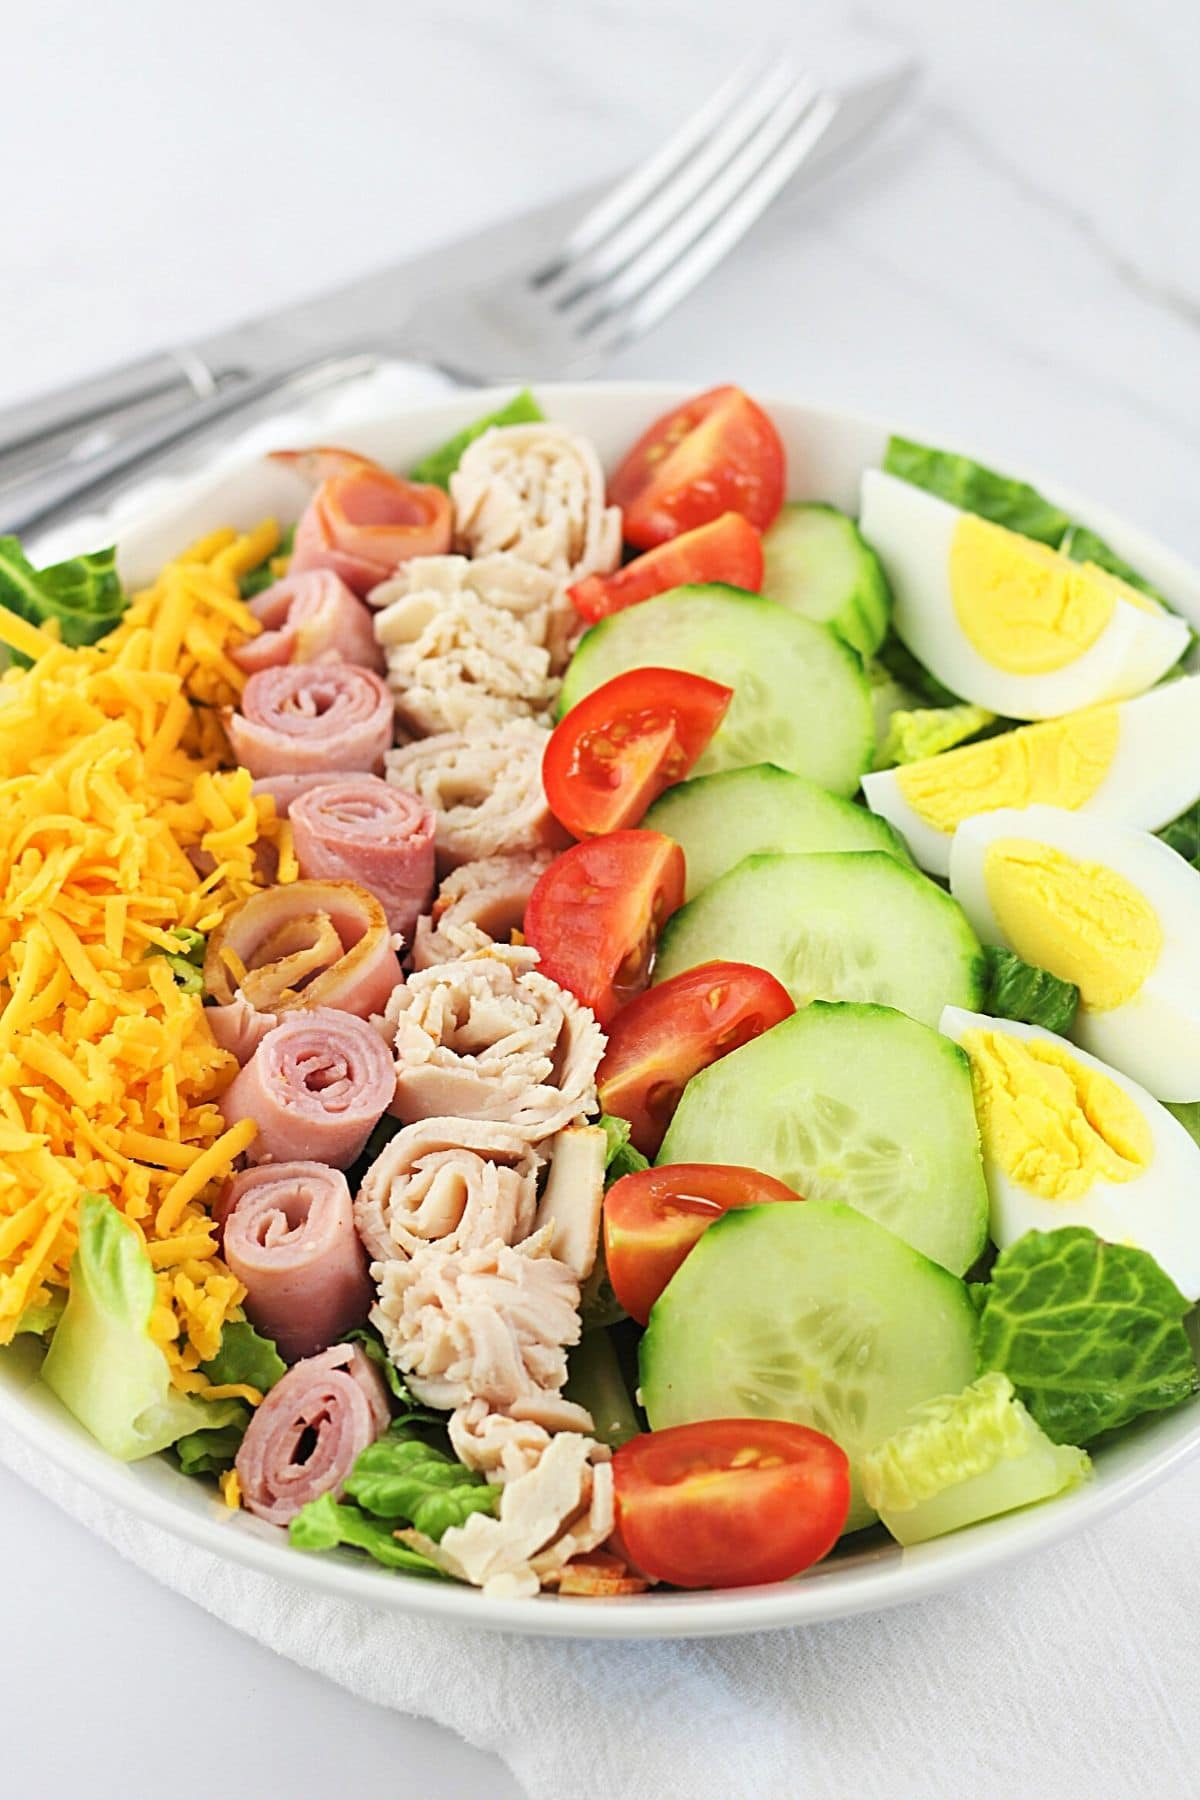 arranged classic chef salad in a white bowl with a knife and fork on the side